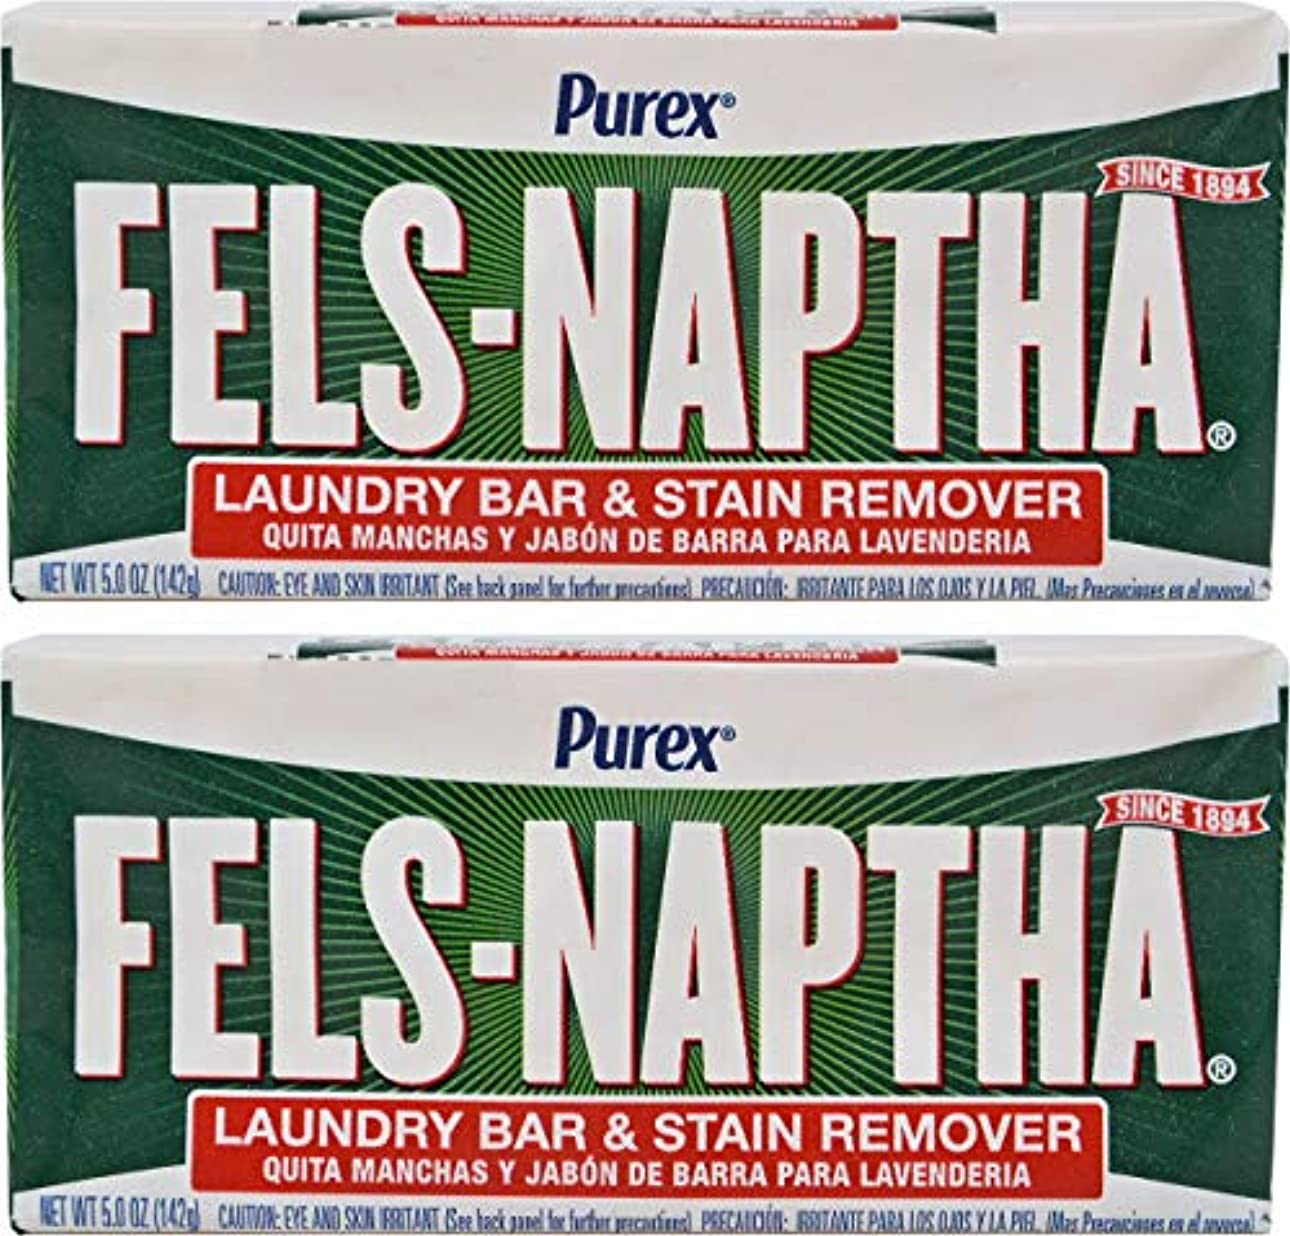 申込み雄弁な小川Fels Naptha Heavy Duty Laundry Soap Bar - 5.5 oz - 2 pk by Fels Naptha